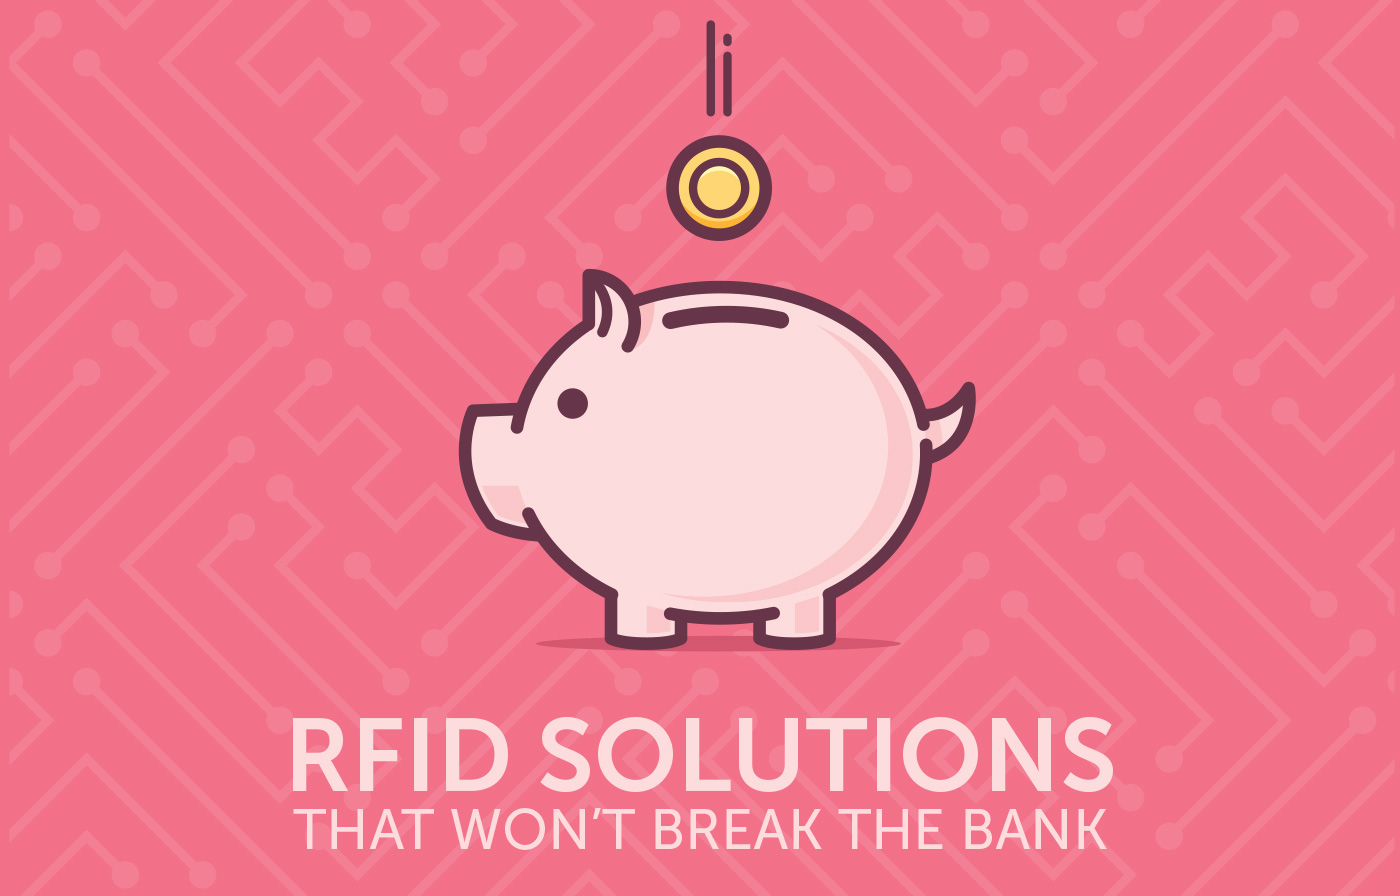 RFID Solutions That Won't Break The Bank